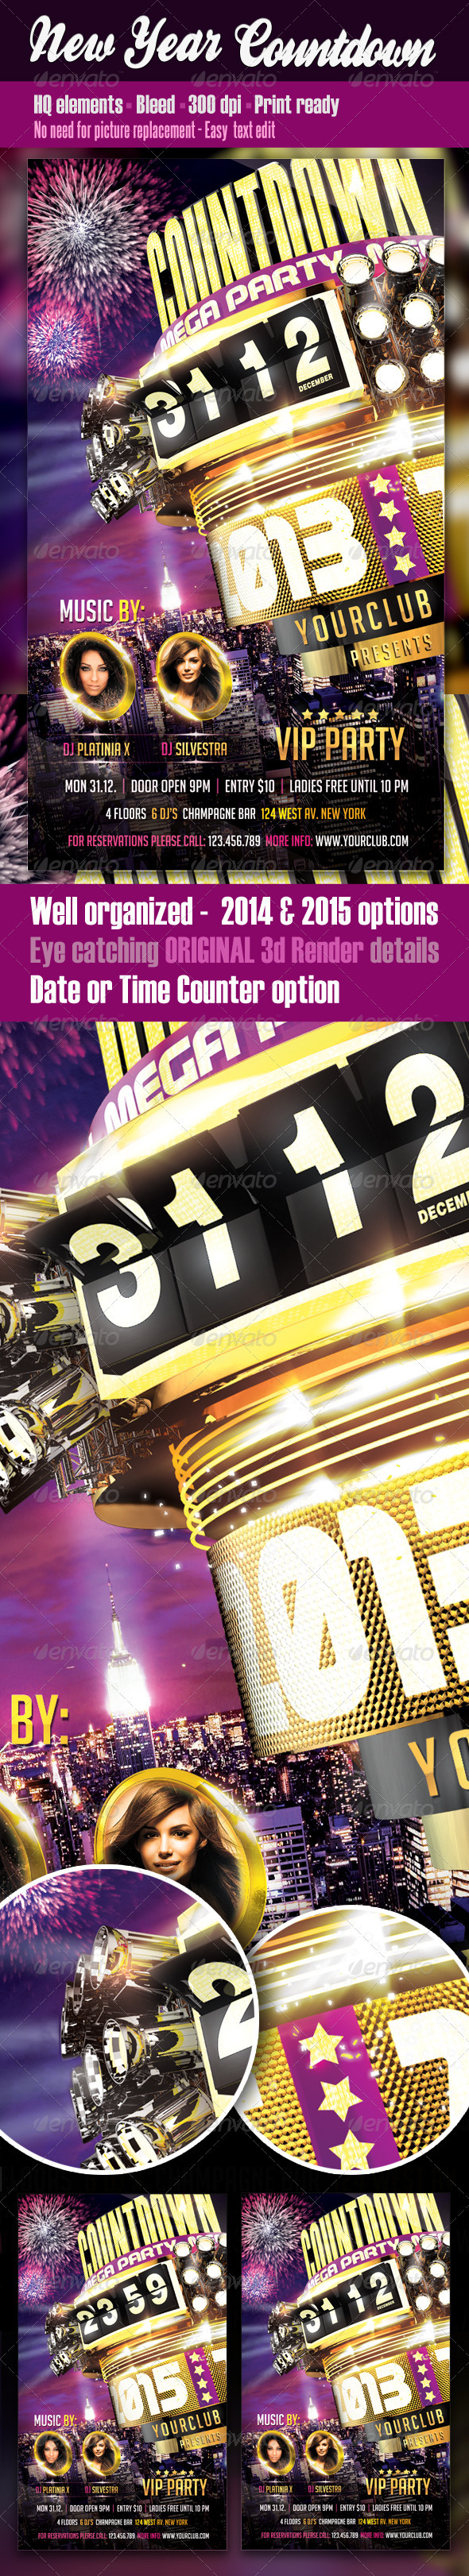 New Year Countdown Flyer - Clubs & Parties Events